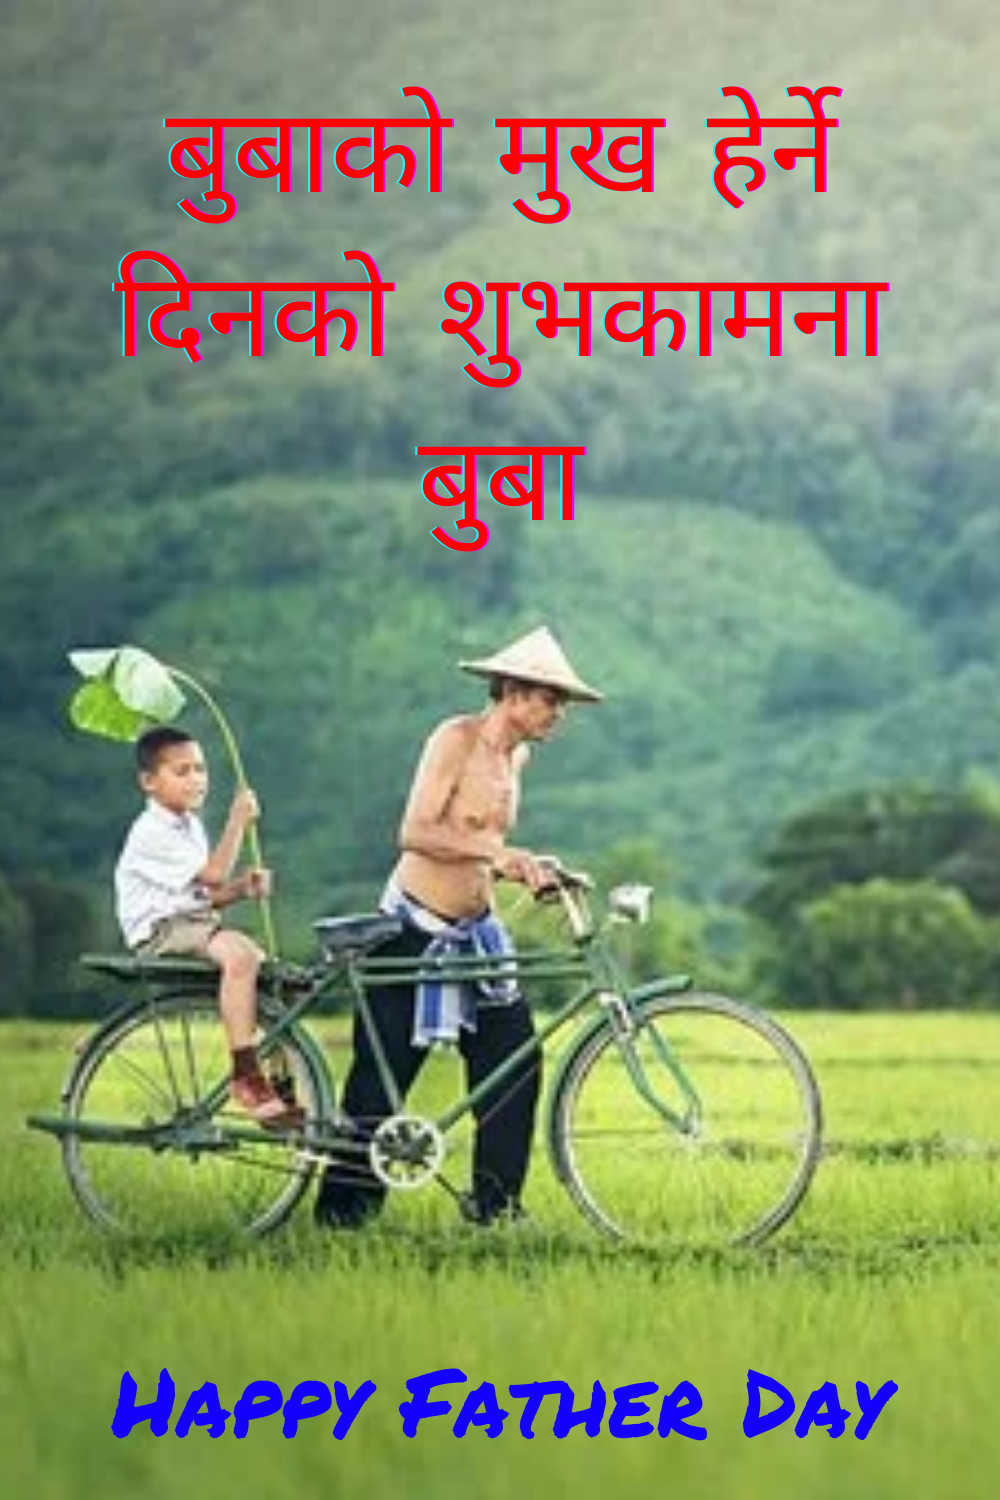 Happy Father Day Wishes, Status, Quotes, Caption in Nepali language